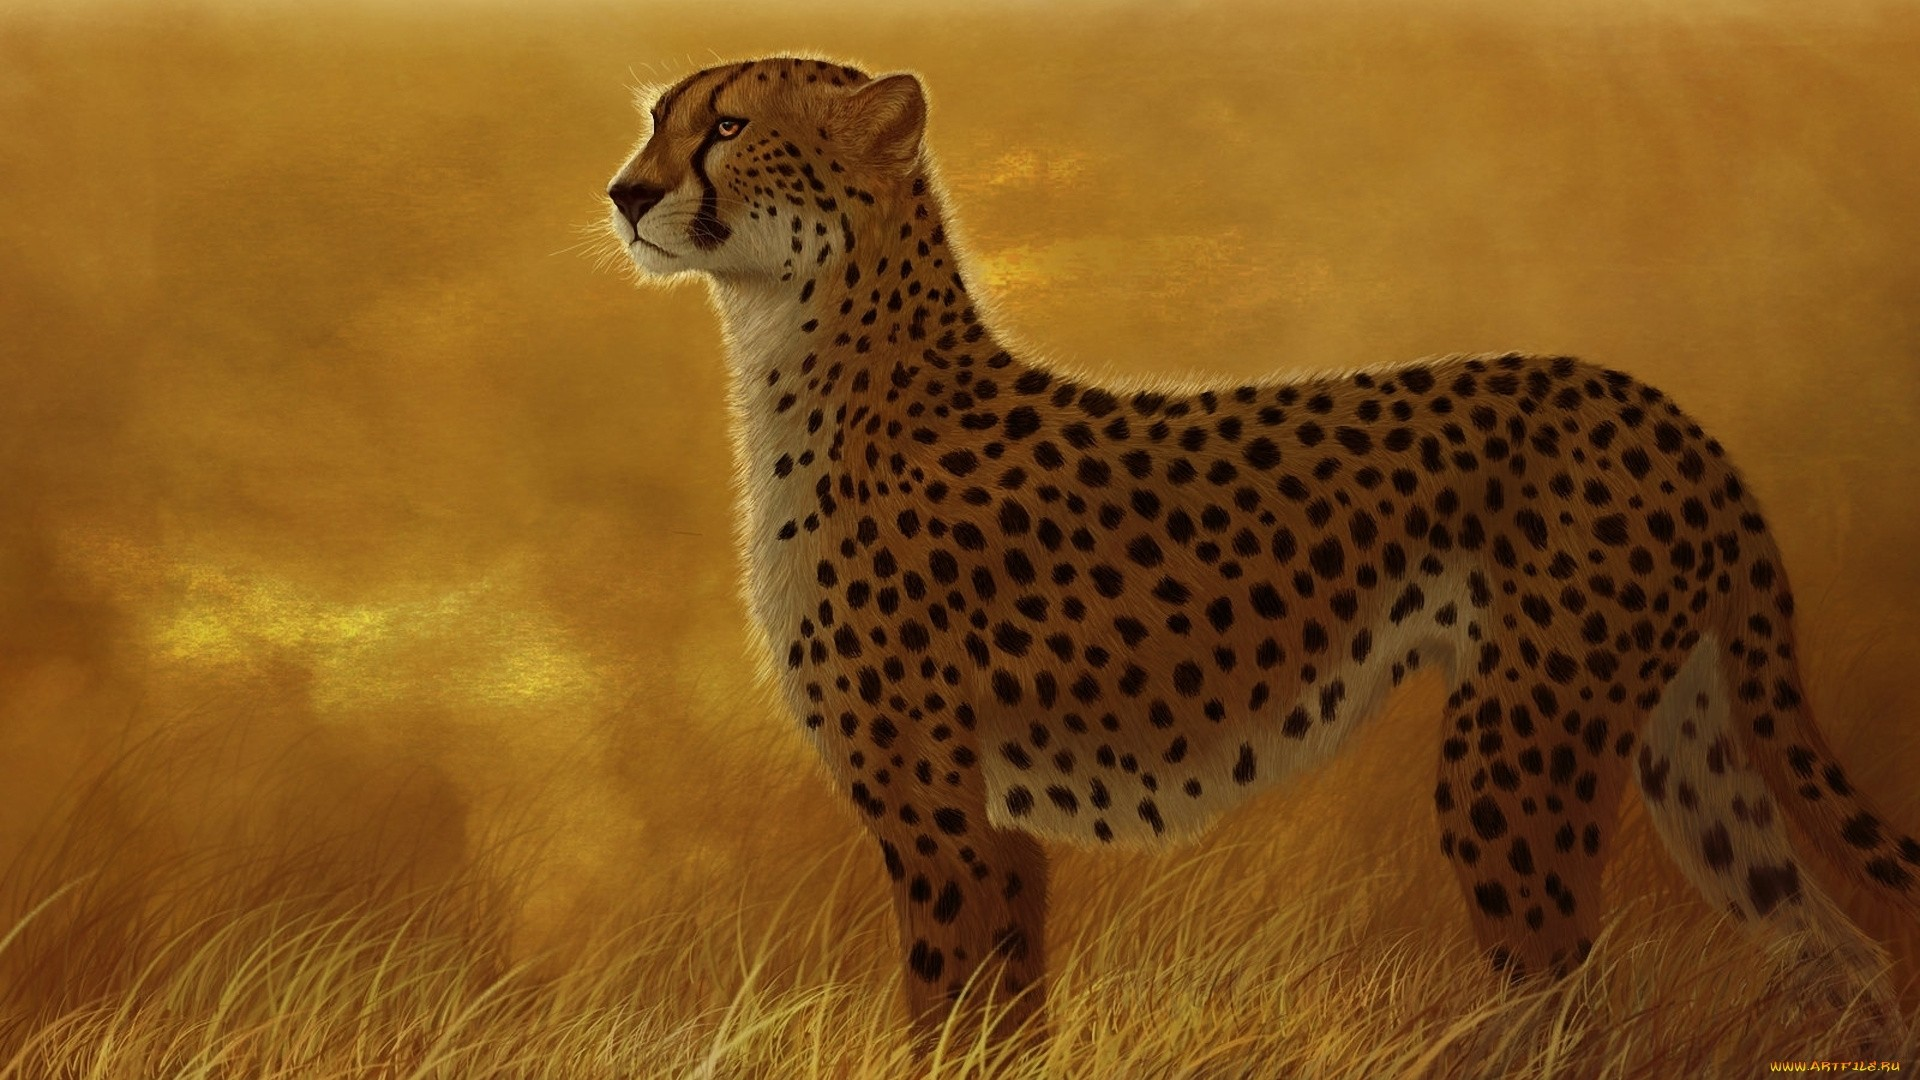 Cheetah hd wallpaper download